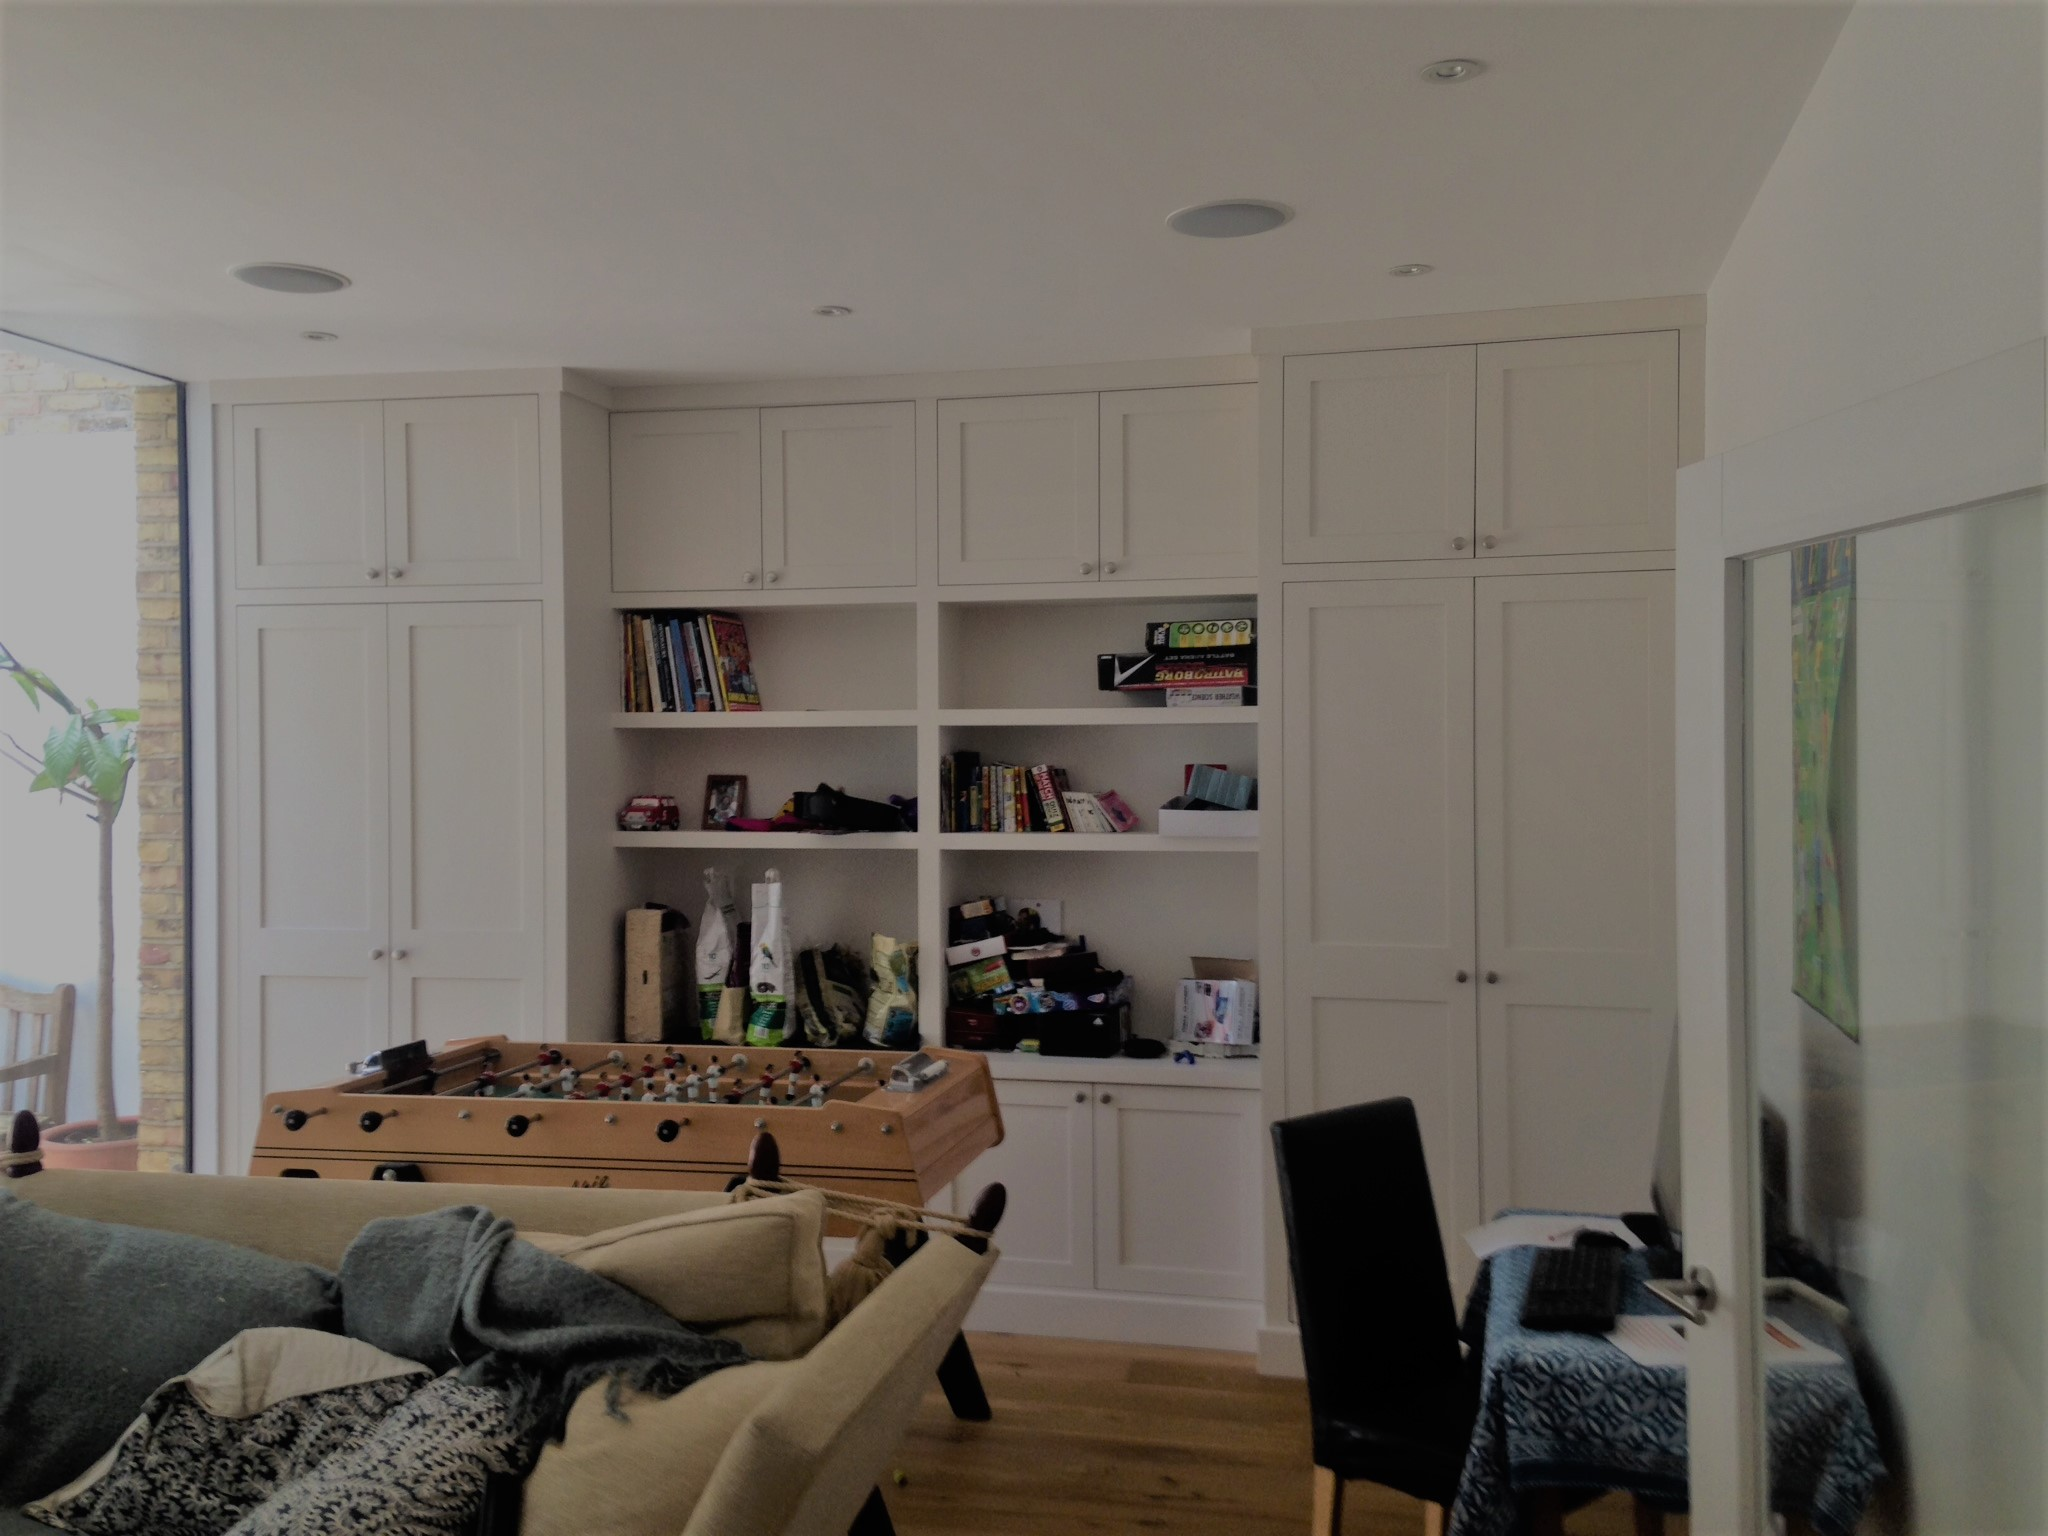 A wardrobe doesn't necessarily have to be in a bedroom. This example really illustrates how it works in a living room.